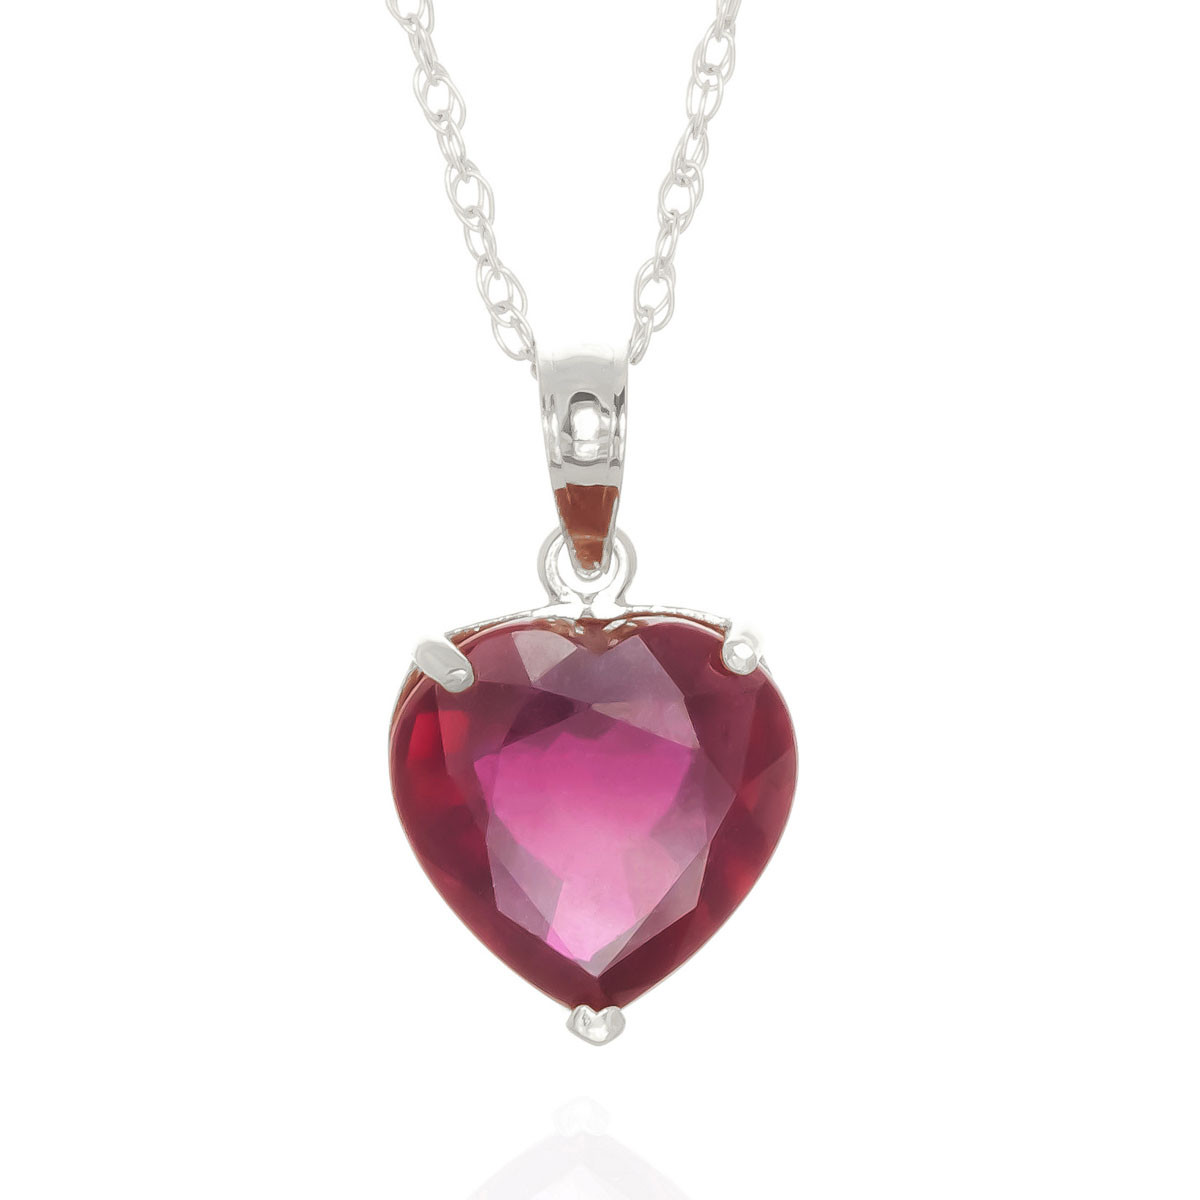 Ruby large heart pendant necklace 43 ct in 9ct white gold 5662w ruby large heart pendant necklace 43 ct in 9ct white gold mozeypictures Gallery